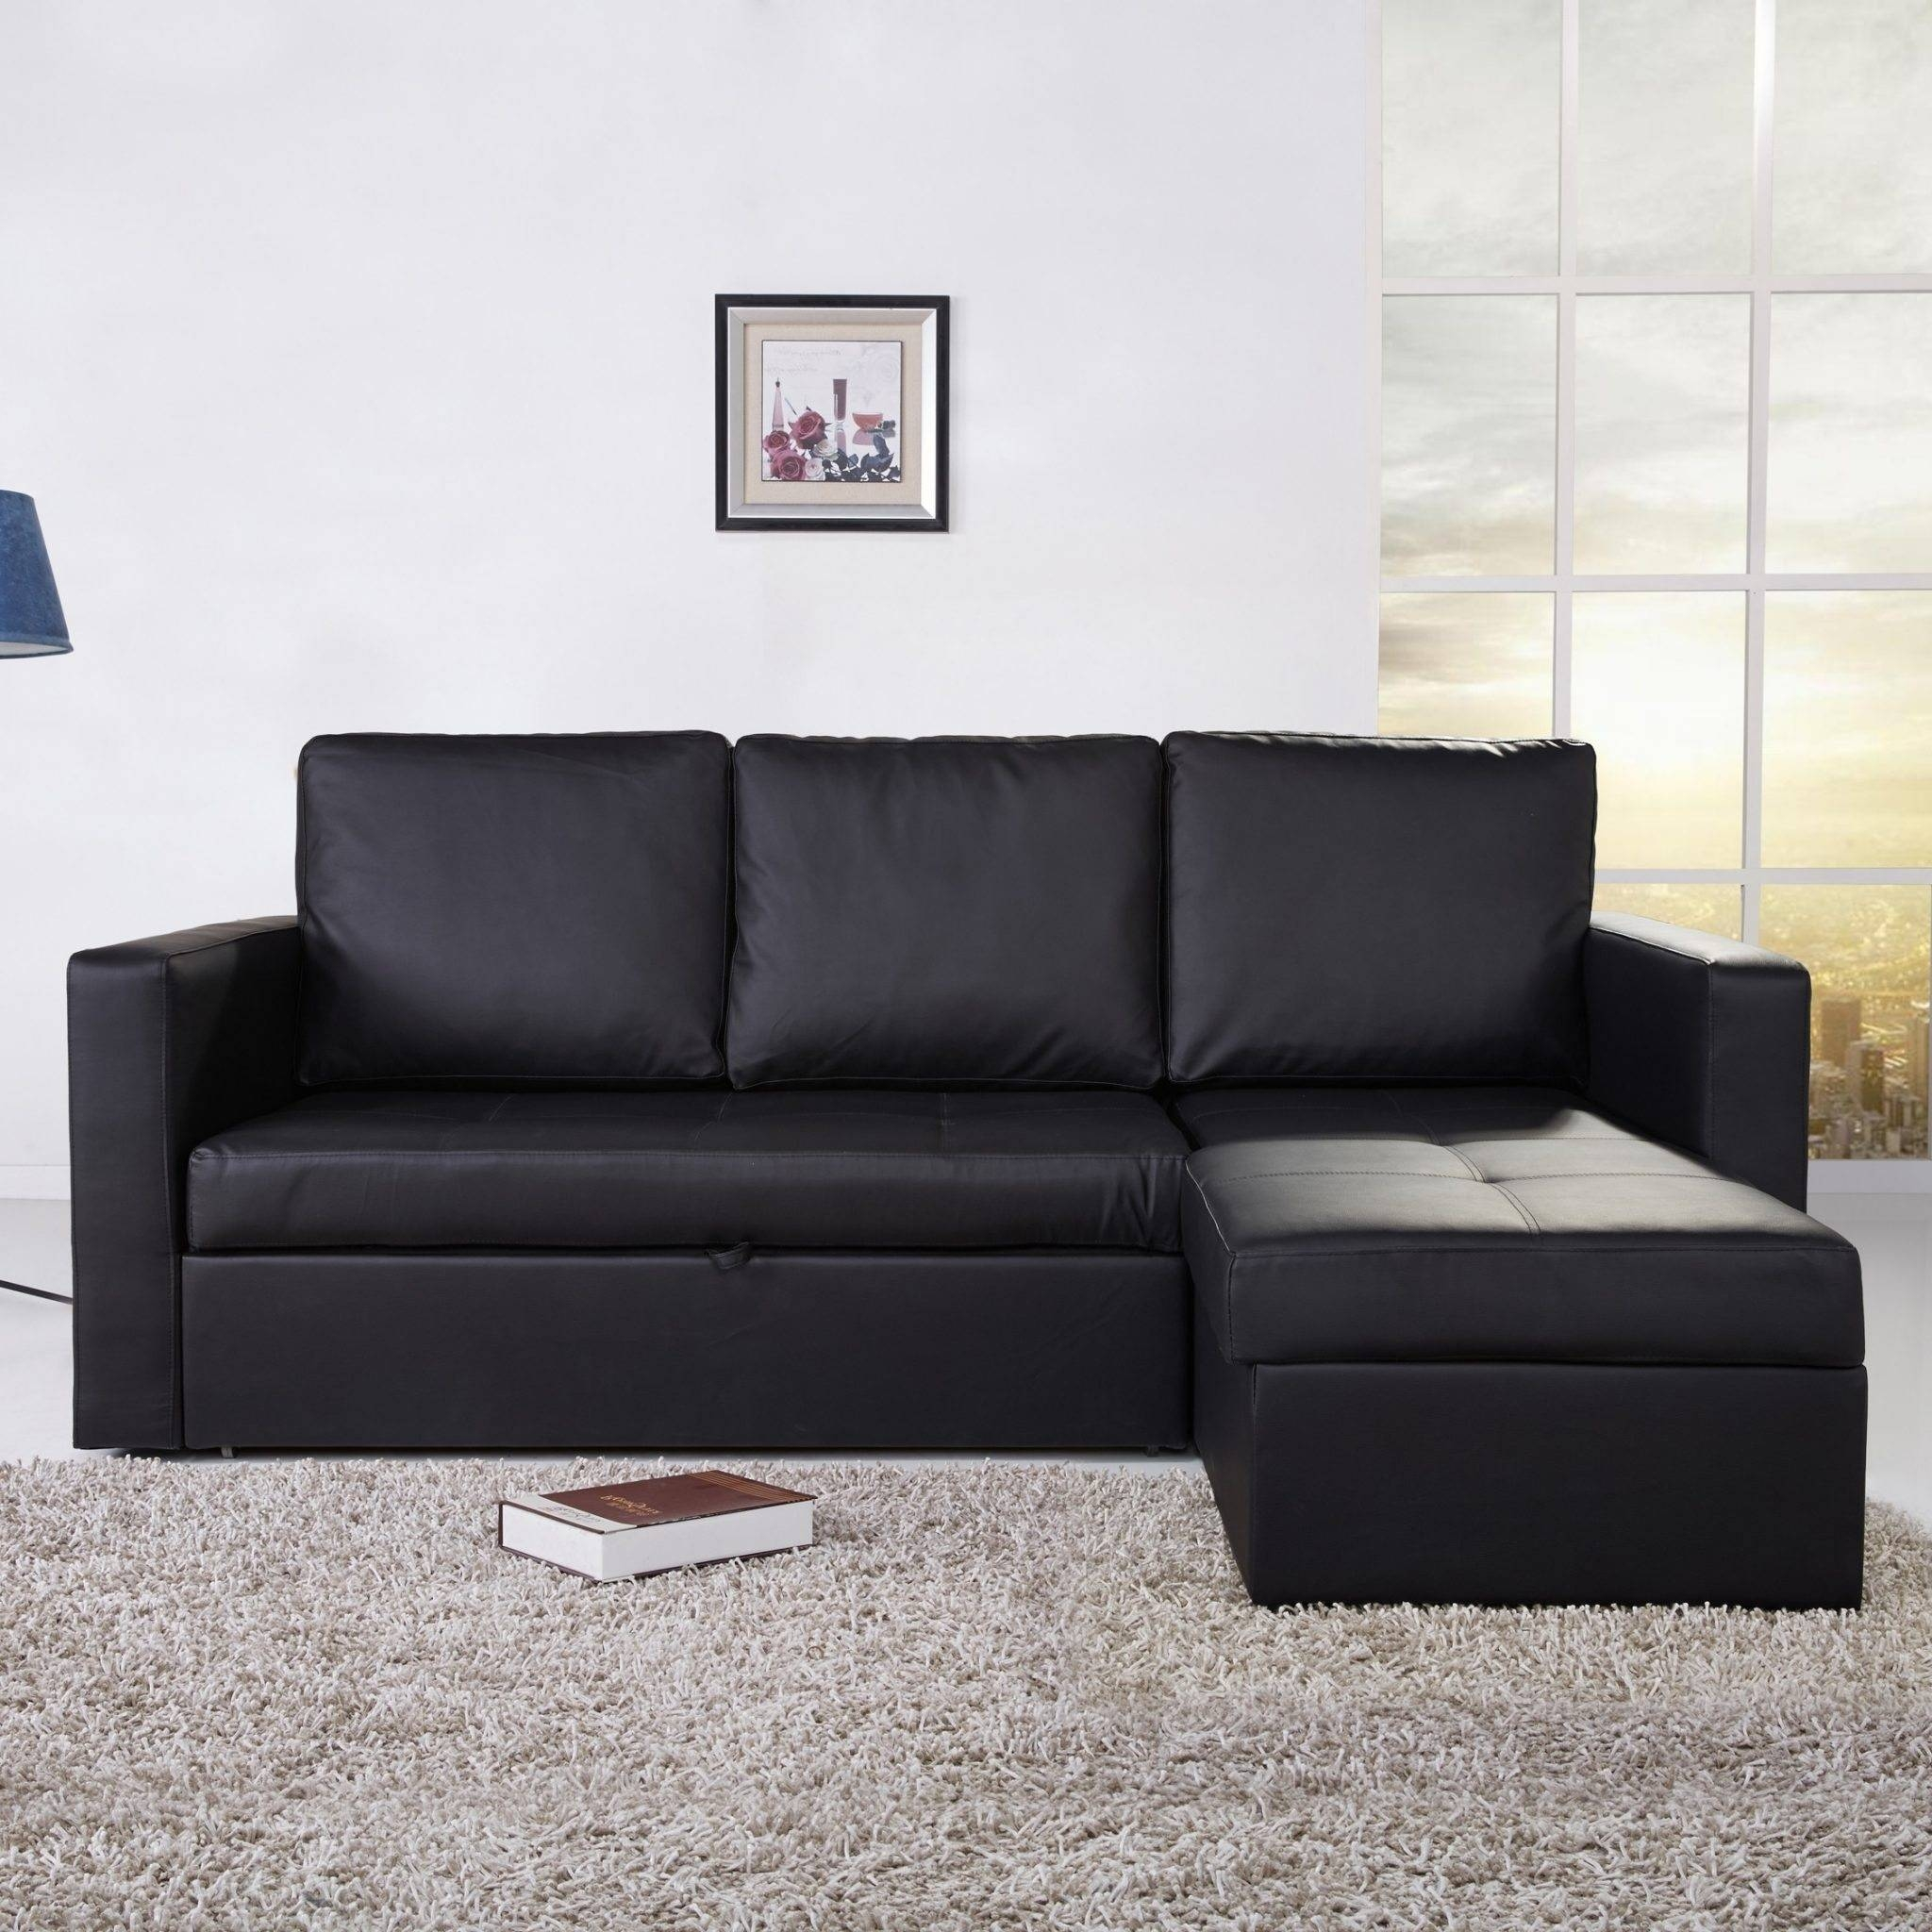 Furniture & Rug: Fancy Sectional Sleeper Sofa For Best Home in King Size Sleeper Sofa Sectional (Image 2 of 30)